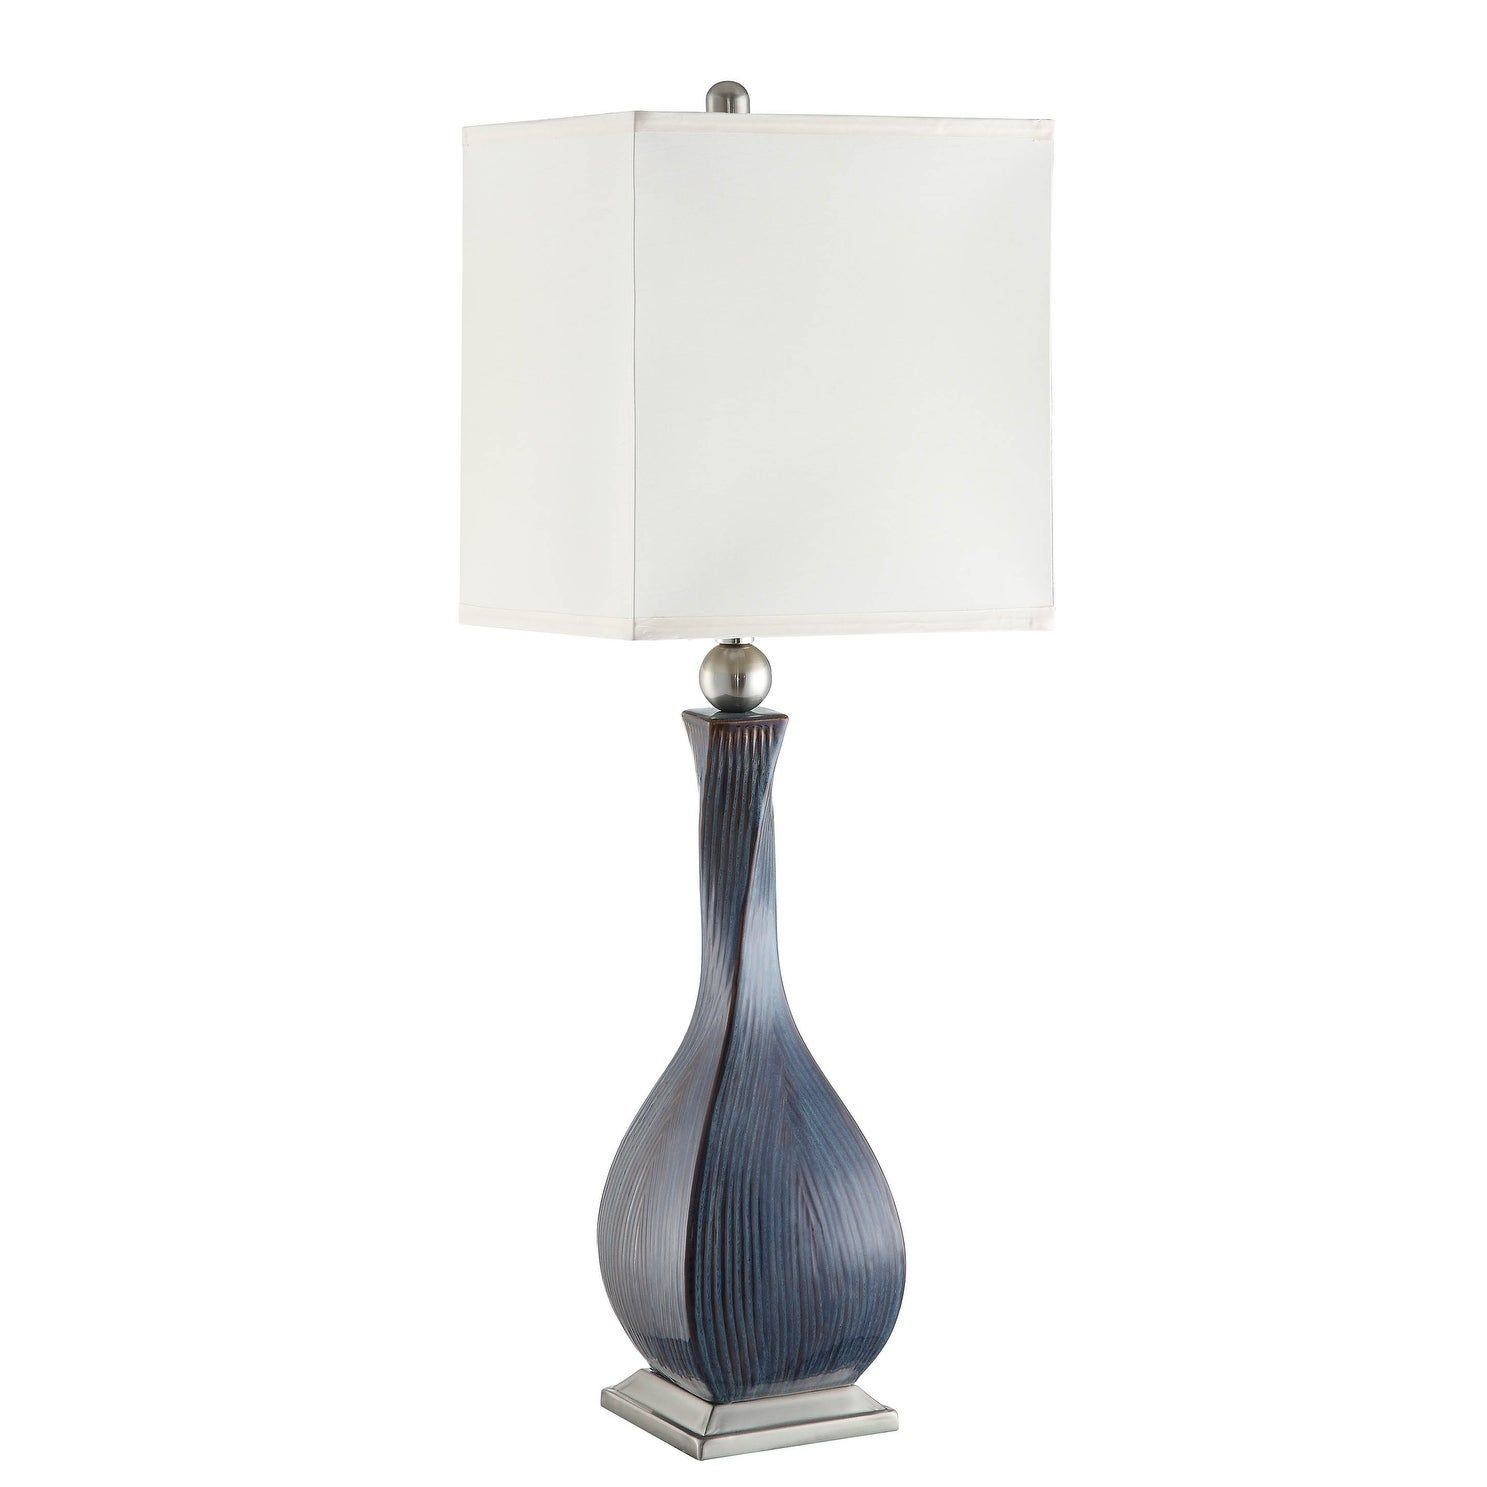 Allegri Blue And Brown 36 Inch Table Lamp Table Lamp Ceramic